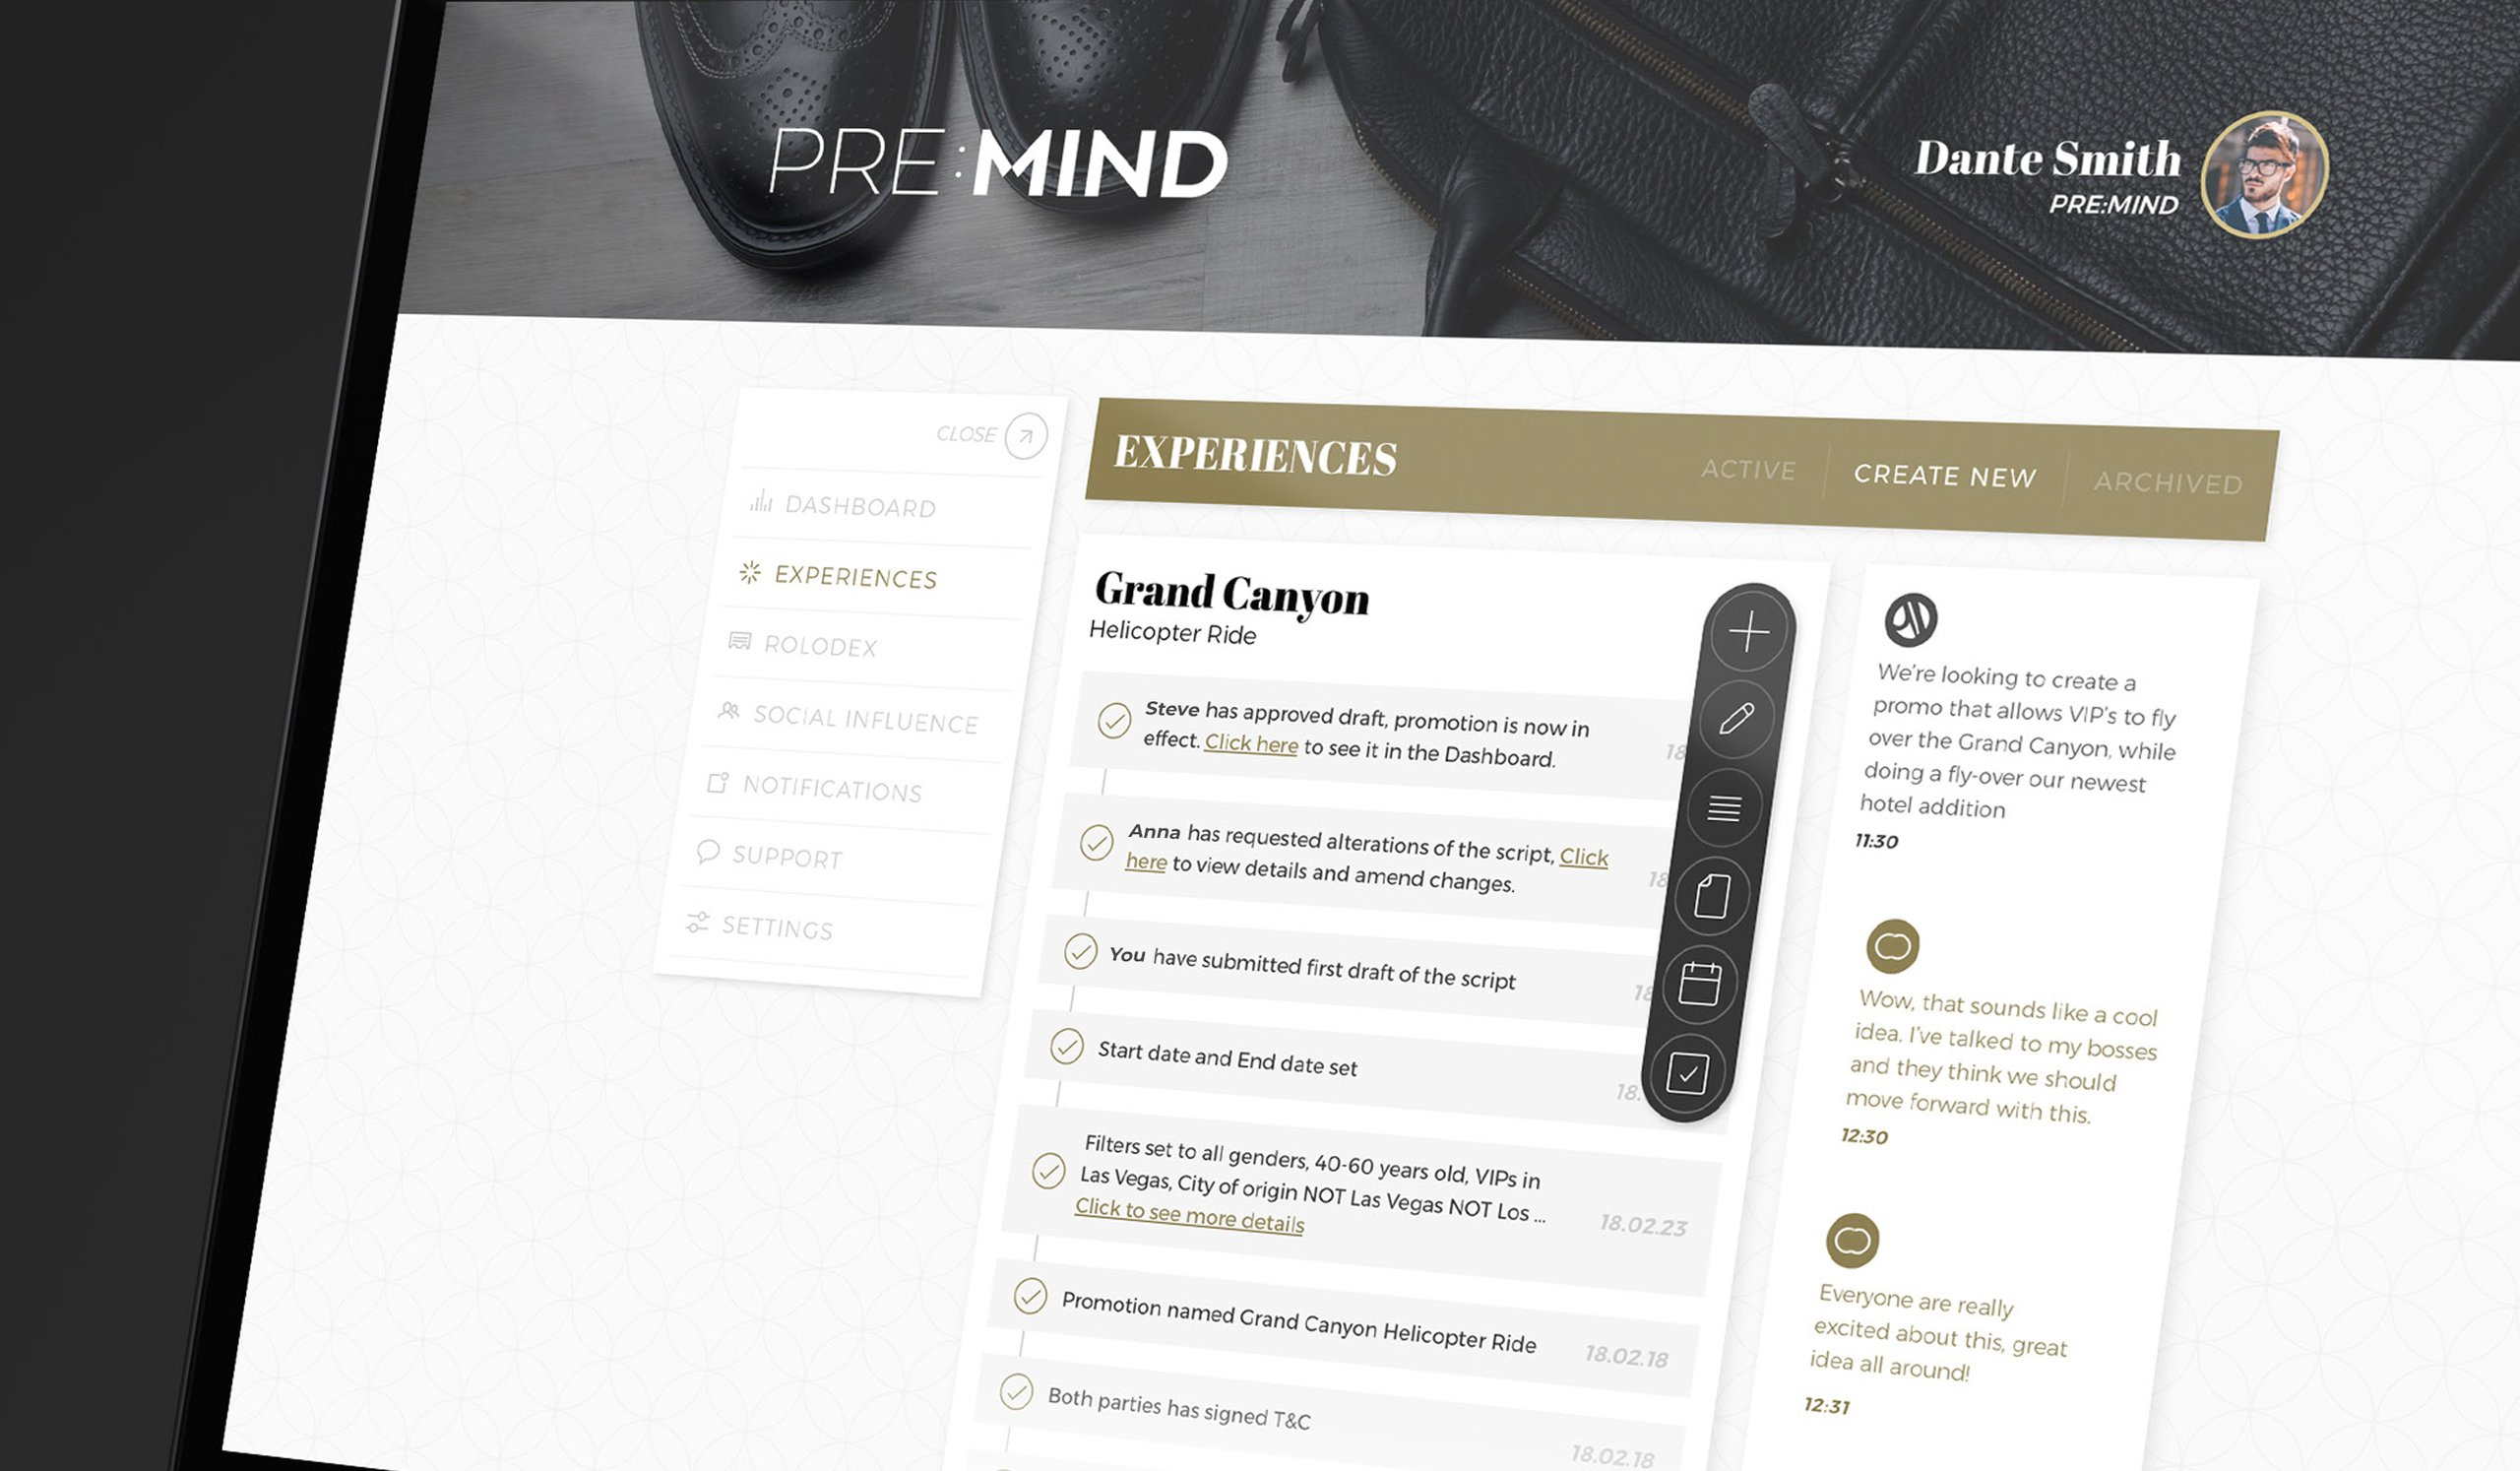 PRE:MIND dashboard, zoomed